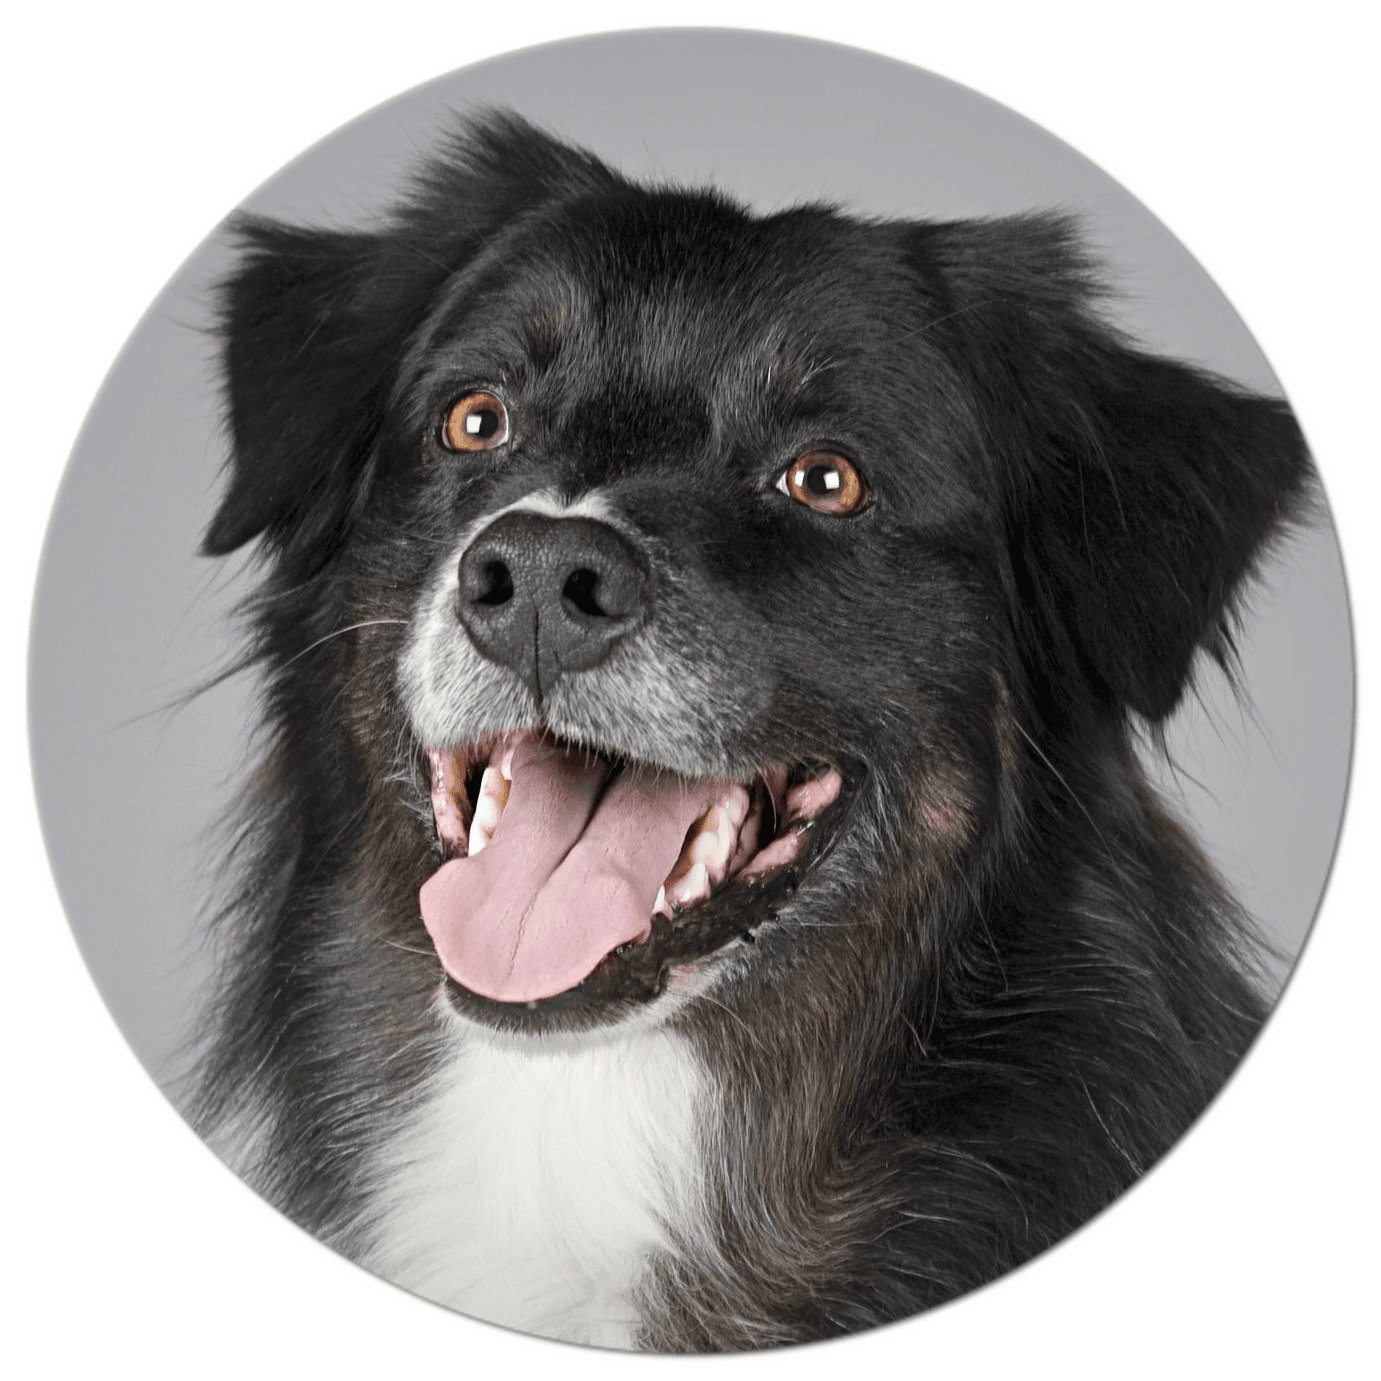 Adopt a Dog--picture of black and white herding dog